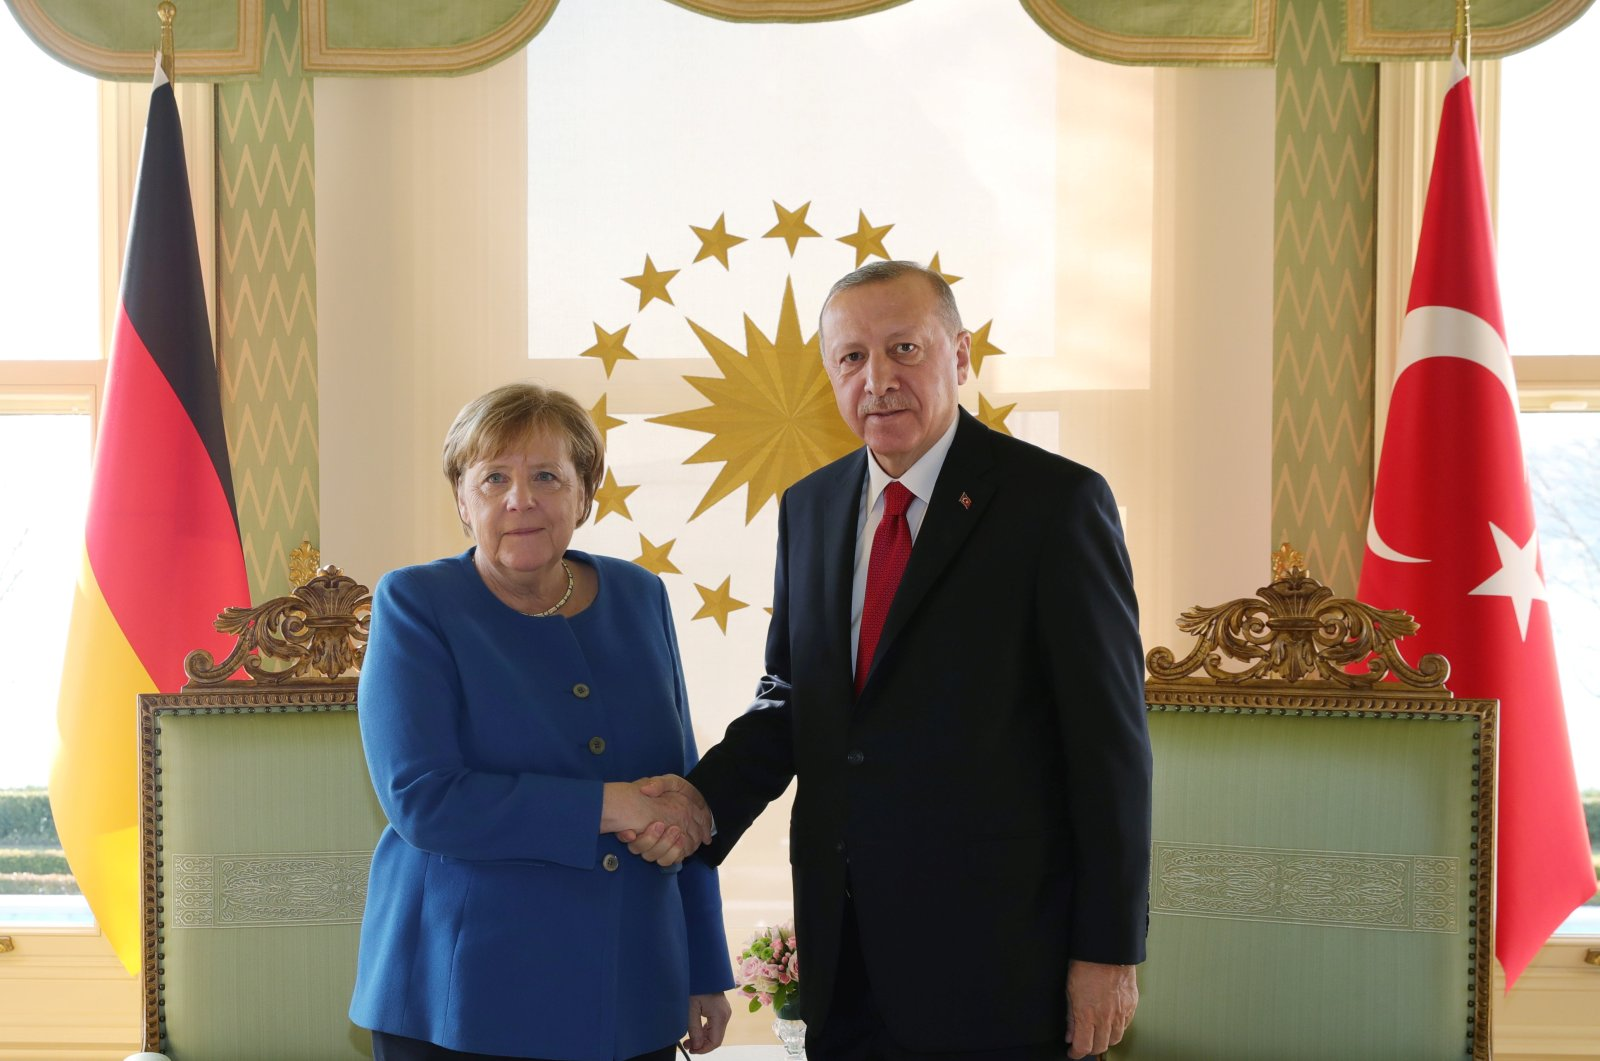 German Chancellor Angela Merkel shakes hands with President Tayyip Erdoğan during their meeting in Istanbul, Turkey, Jan. 24, 2020. (Reuters Photo)